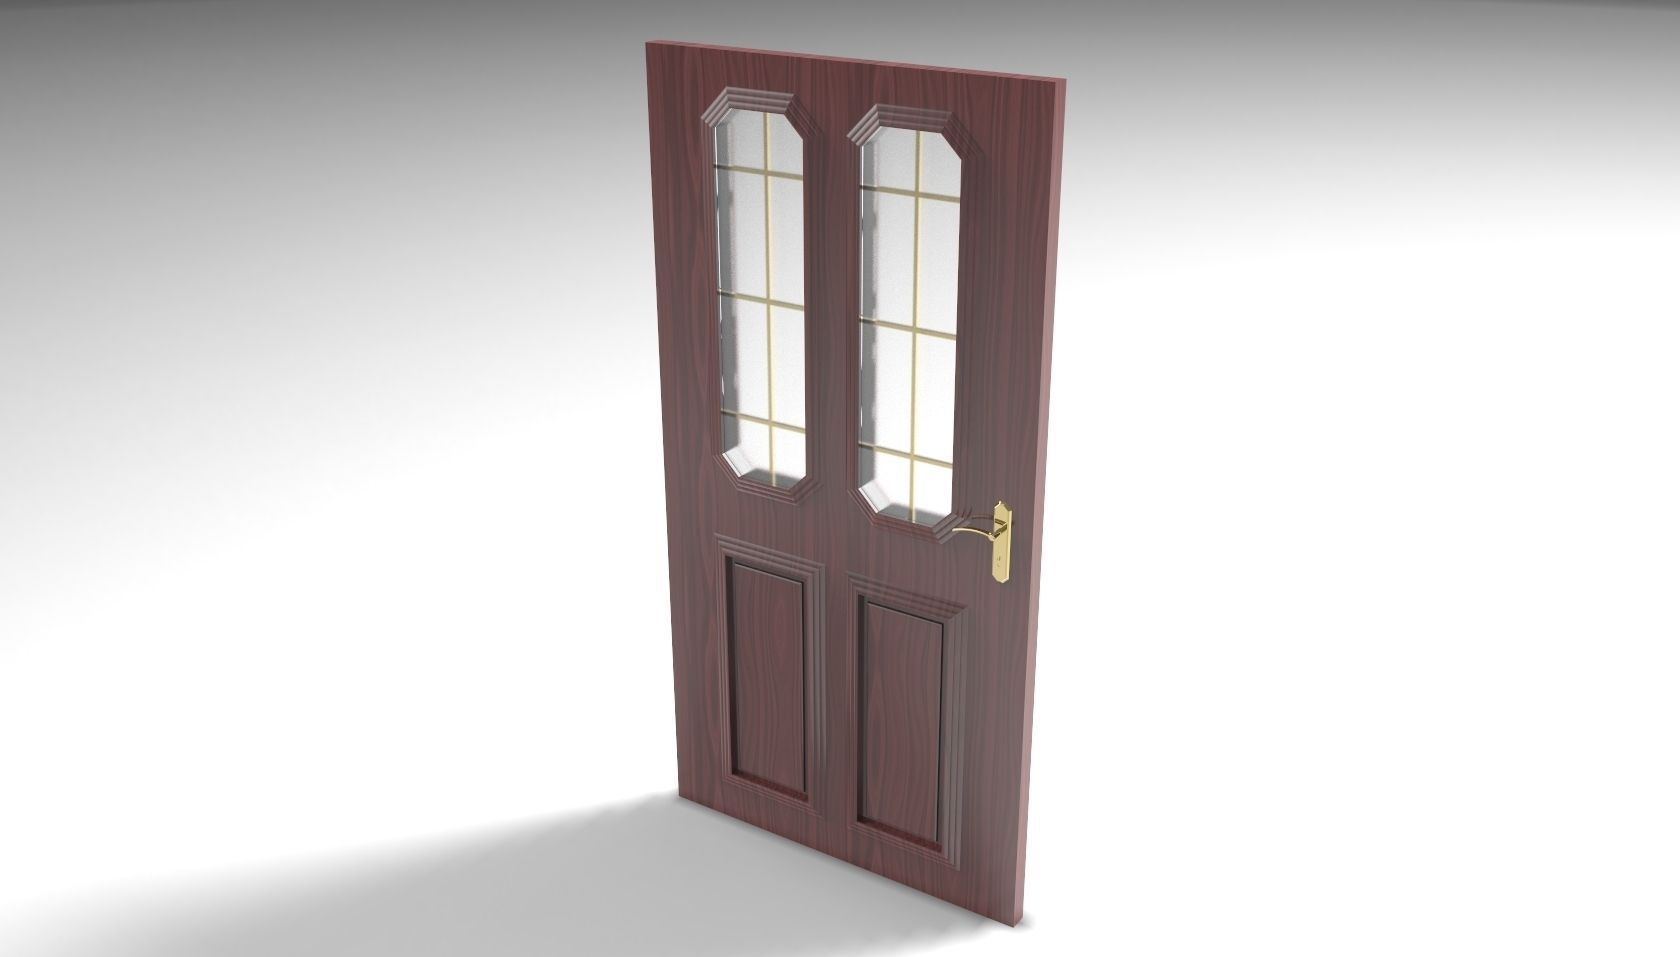 House door 3d model stl for Door models for house